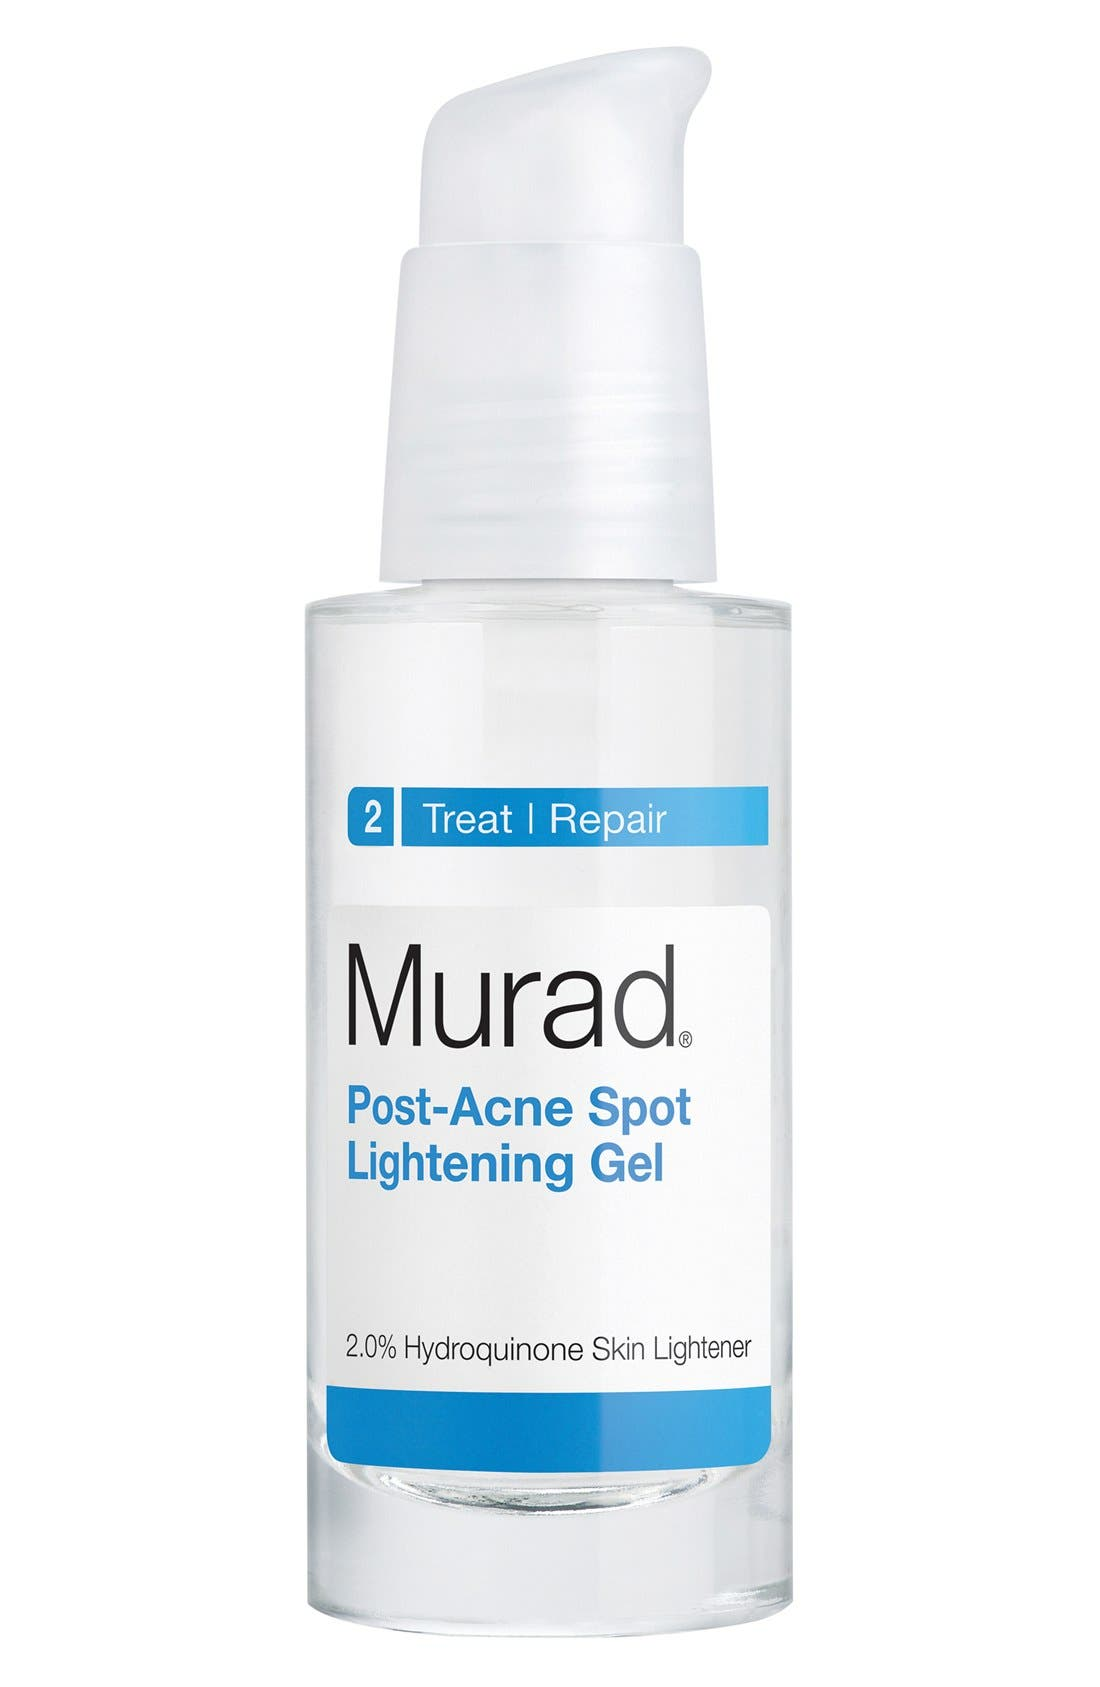 Murad® Post-Acne Spot Lightening Gel